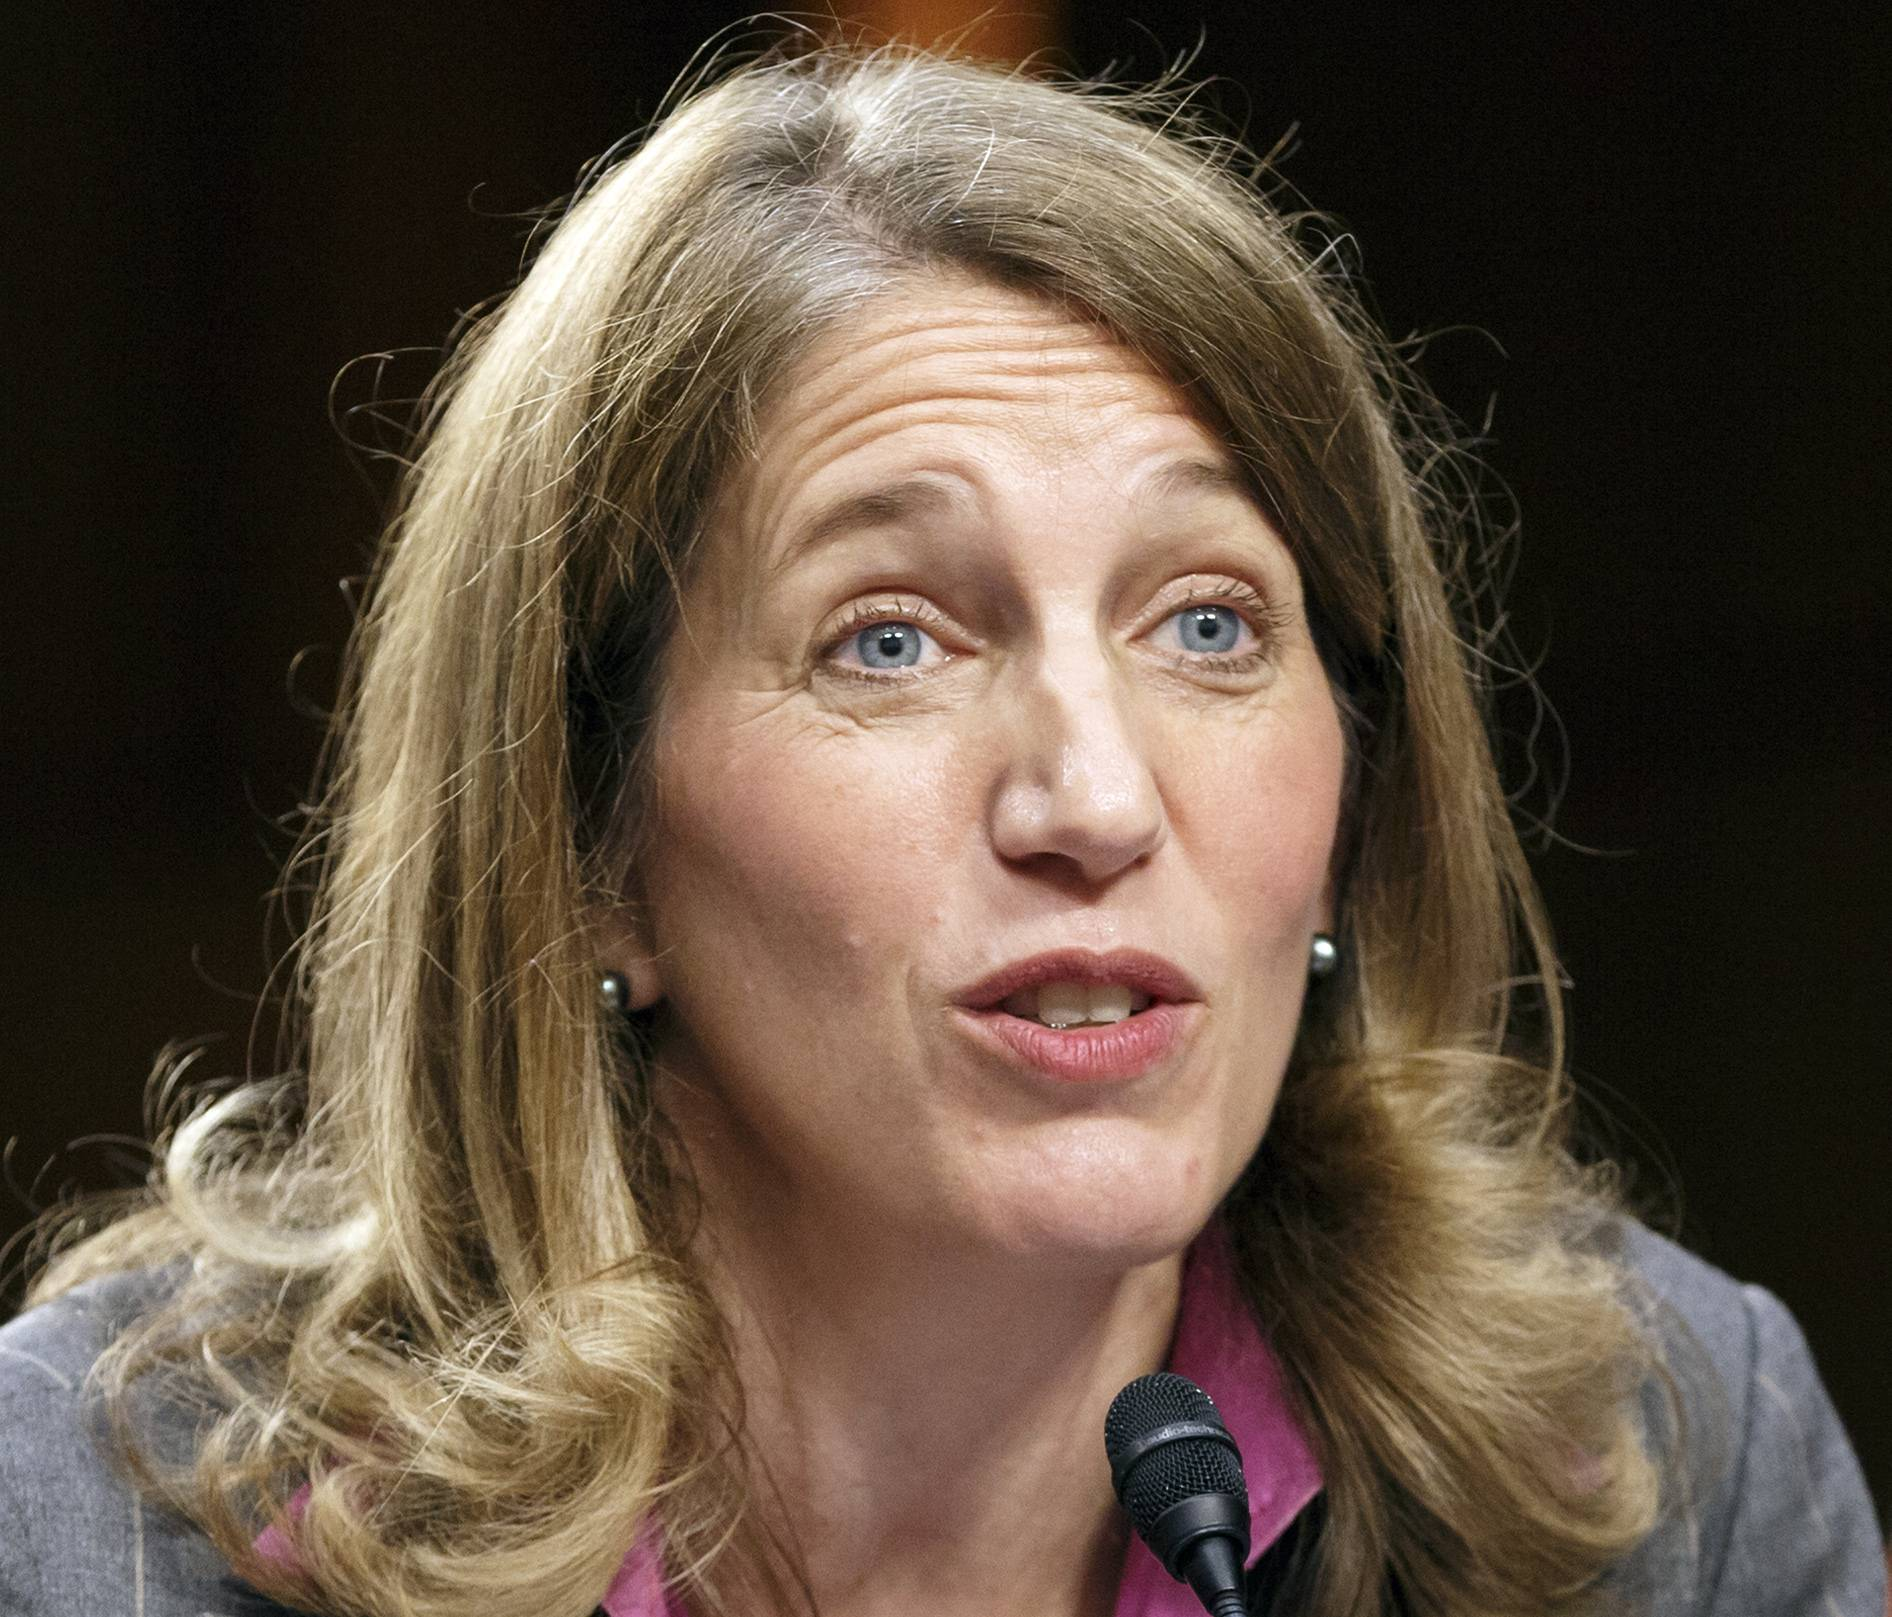 Health and Human Service Secretary Sylvia Mathews faces having to clear up data discrepancies that could potentially jeopardize coverage for millions under the health overhaul, the government's health care fraud watchdog reported Tuesday.